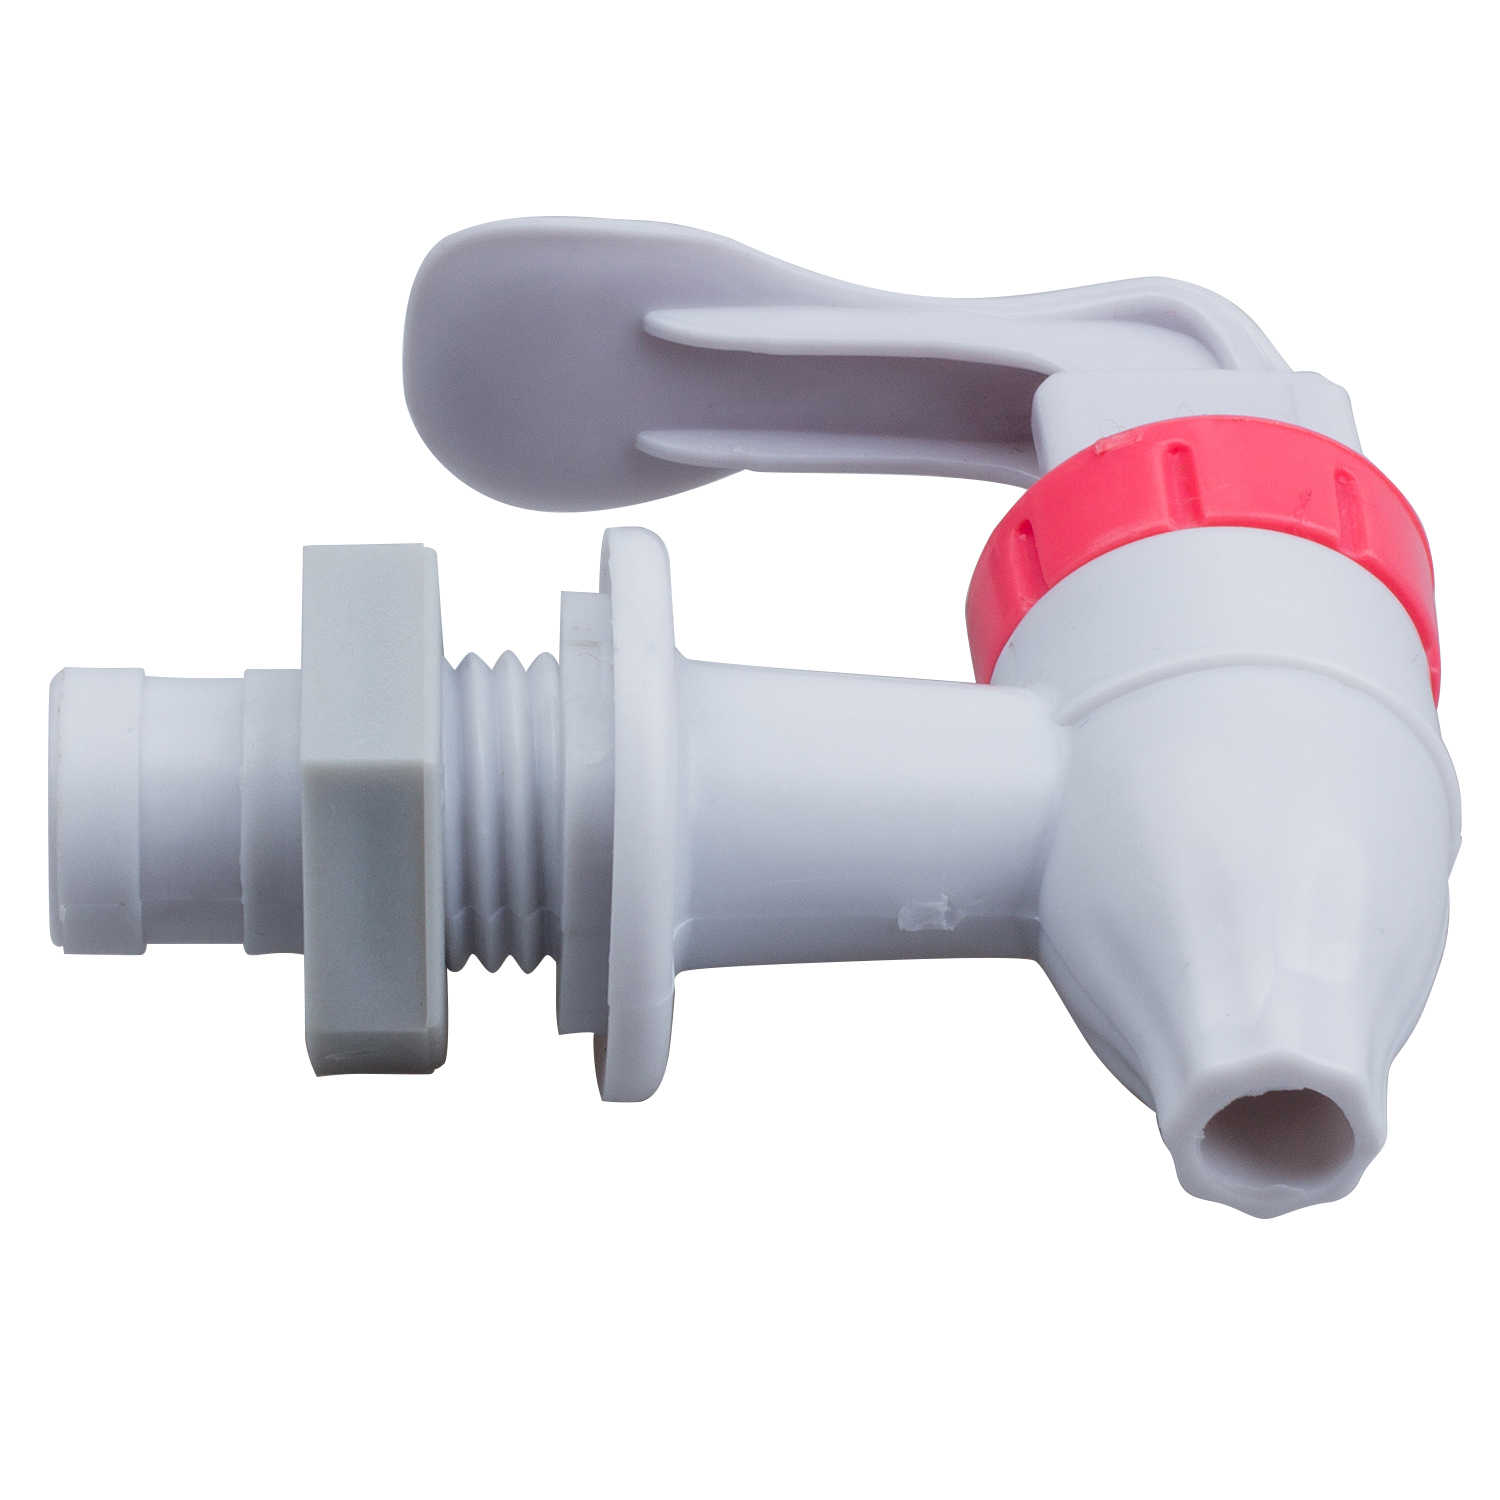 1pcs White Red Push Type Plastic Water Dispenser Faucet Tap Replacement Home Essential drinking fountains Parts